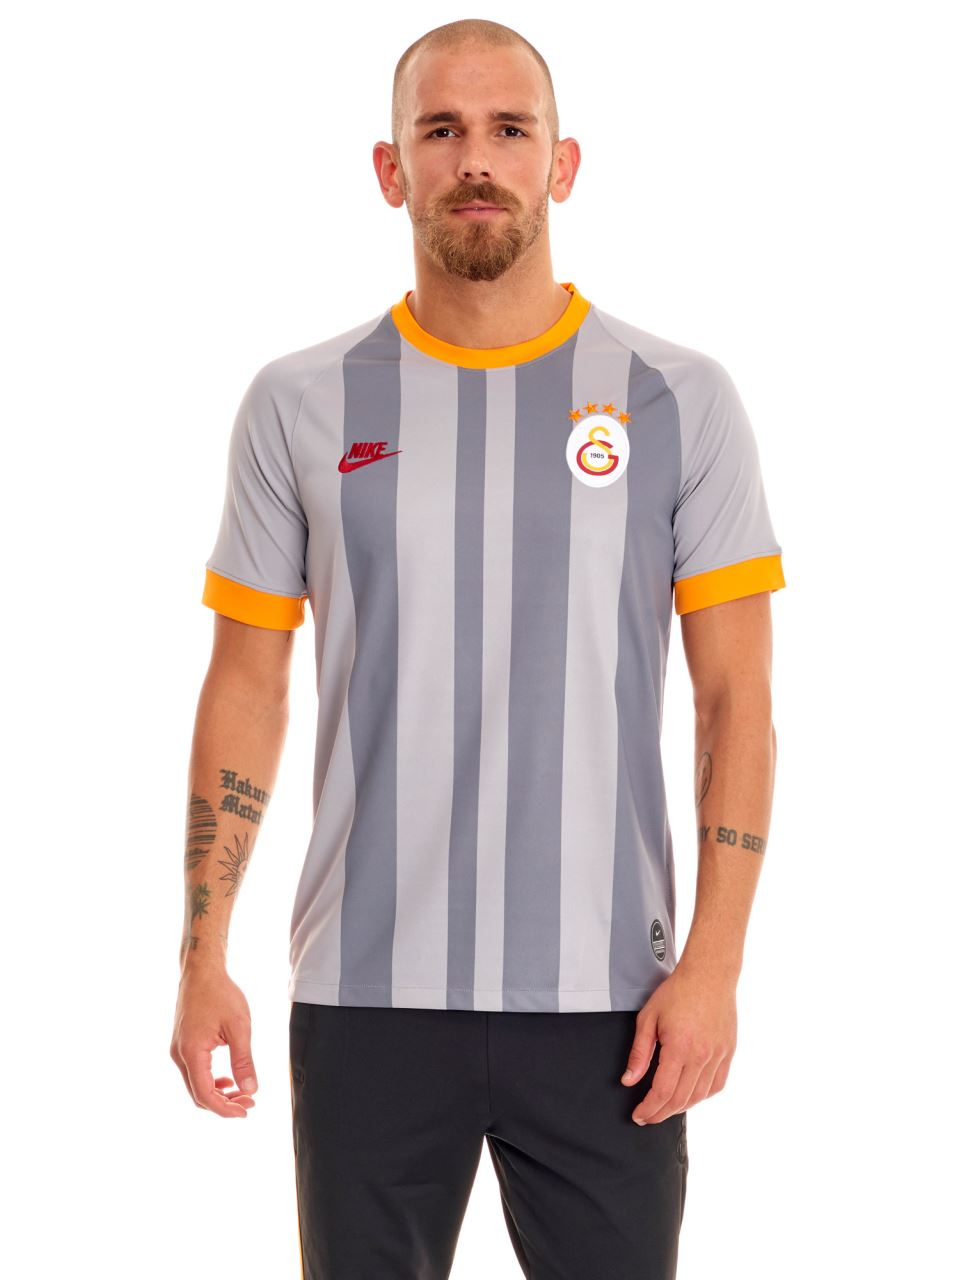 Nike Galatasaray Gri Alternatif Maç Forması 19-20 At0030-060